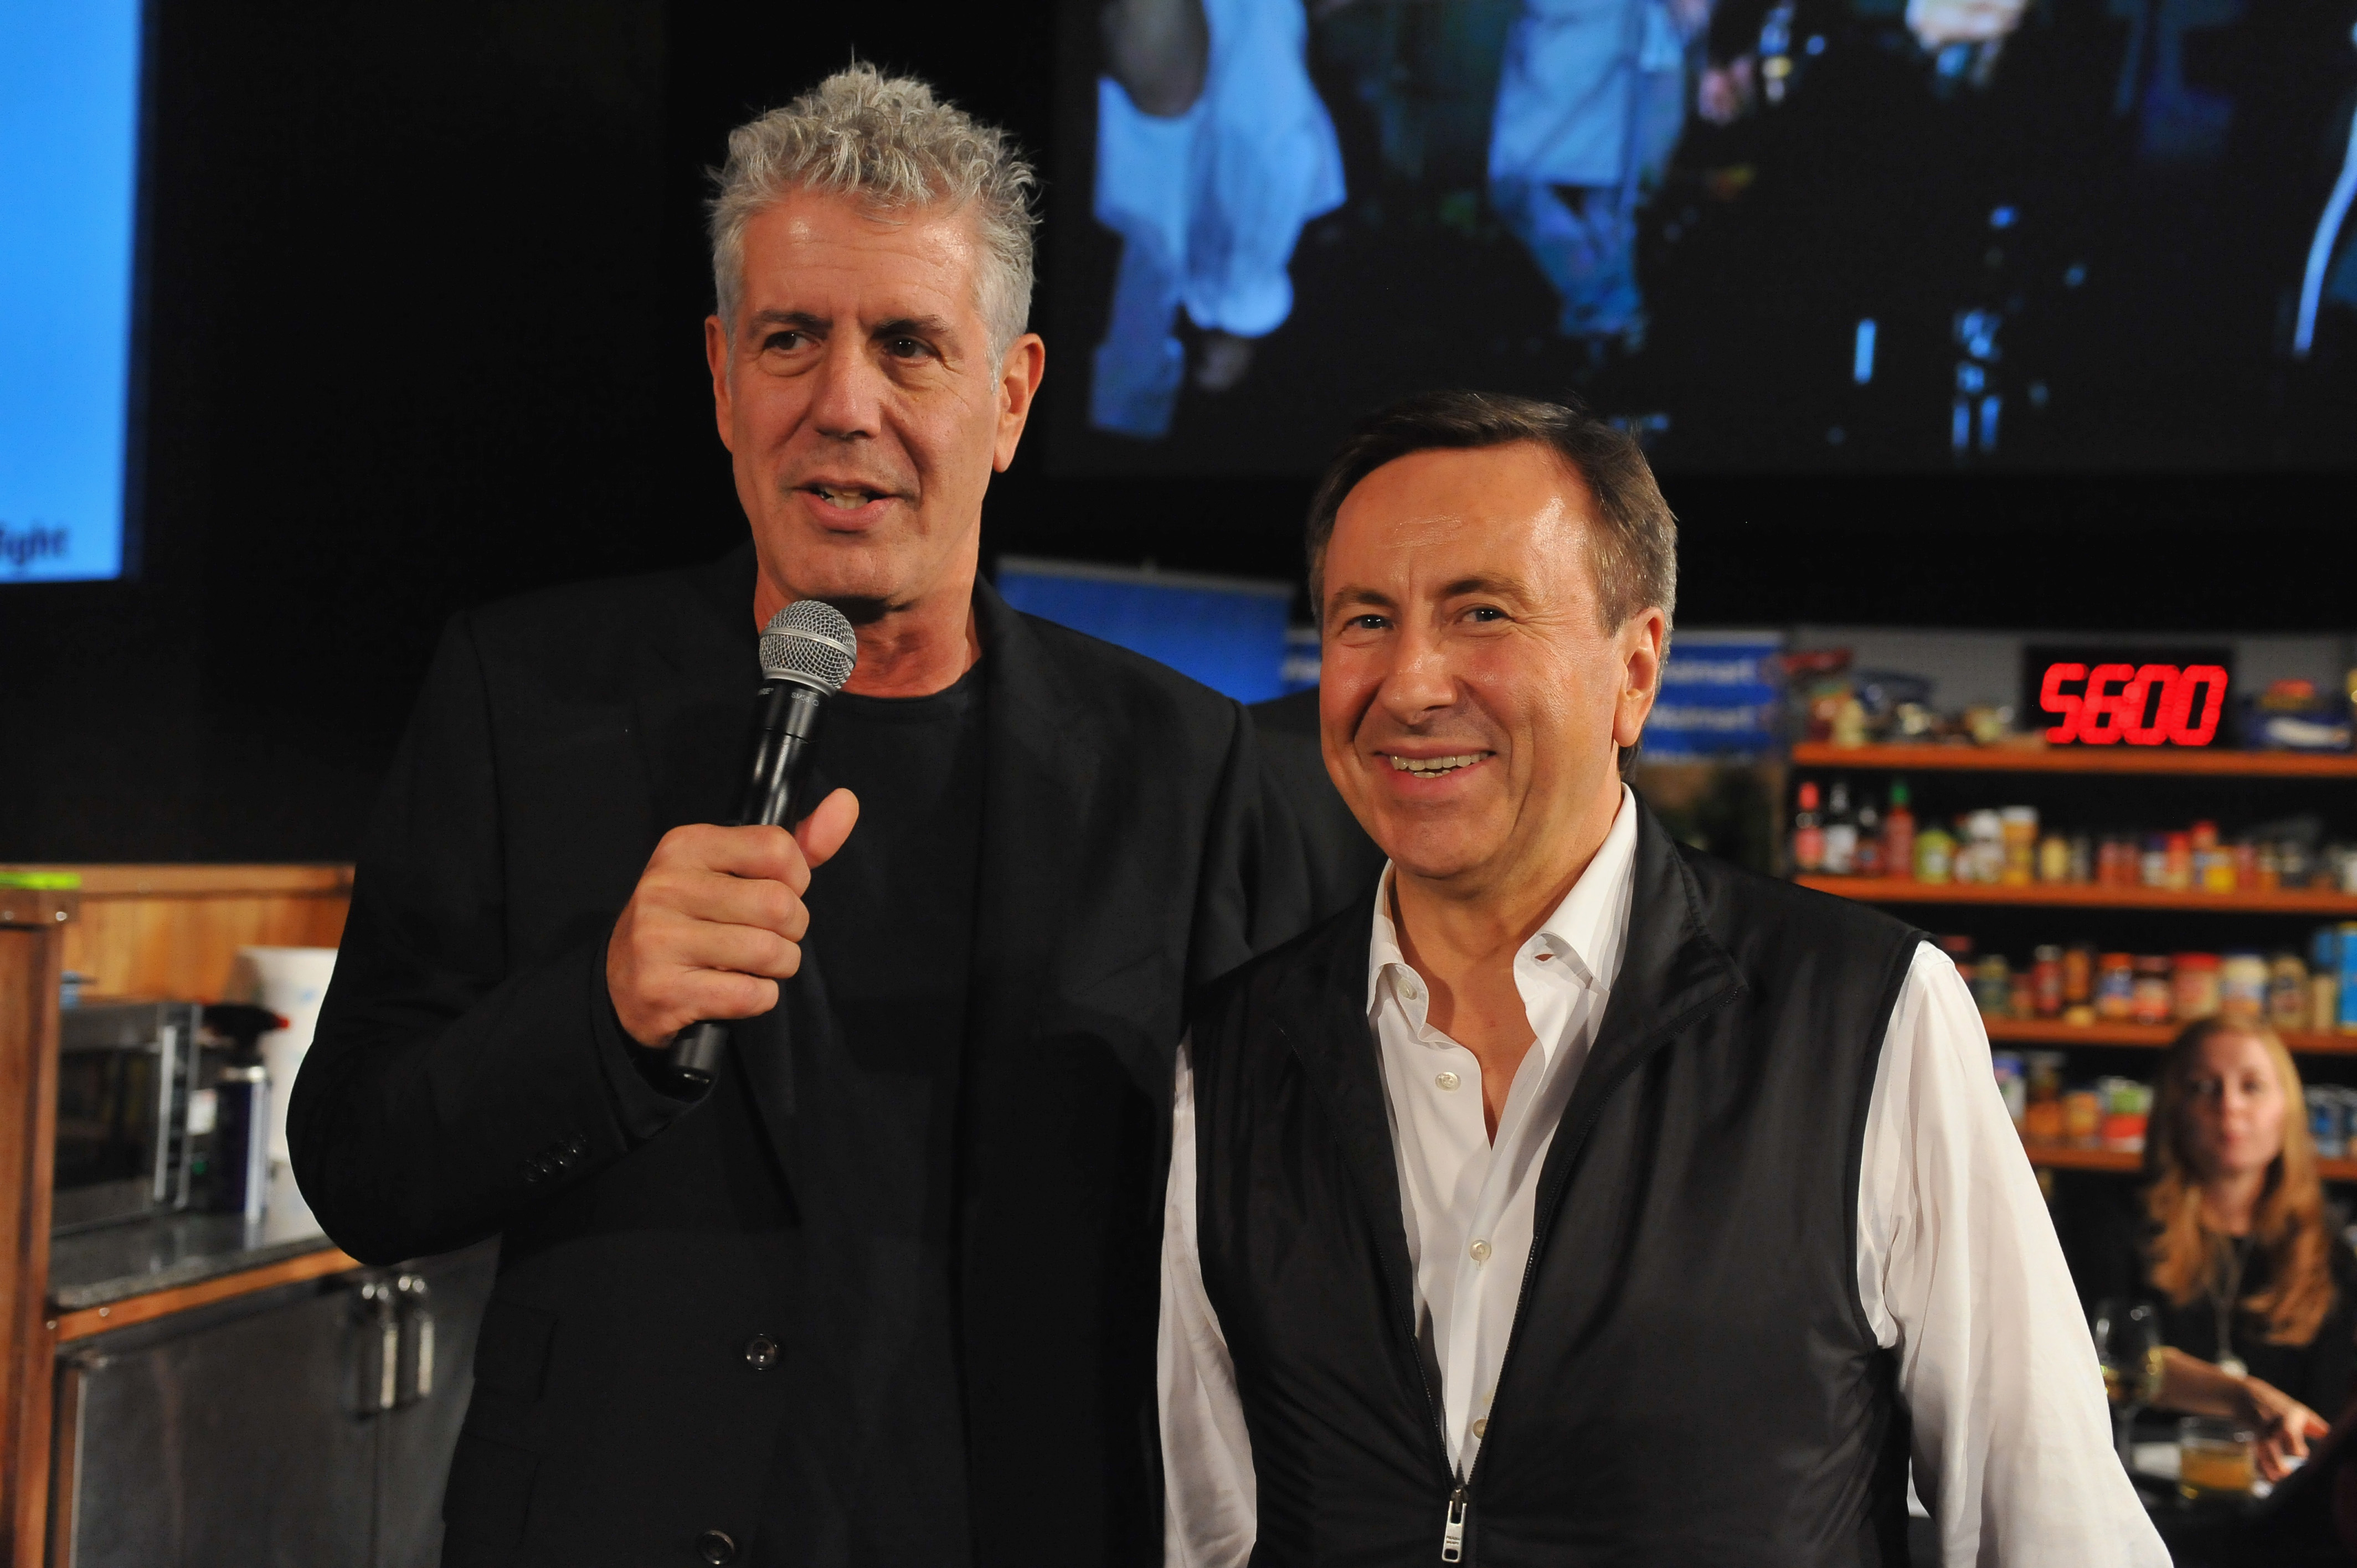 Host Anthony Bourdain and judge Daniel Boulud speak onstage during the DC Central Kitchen's Capital Food Fight event at Ronald Reagan Building on November 11, 2014, in Washington, DC. (Getty Images)